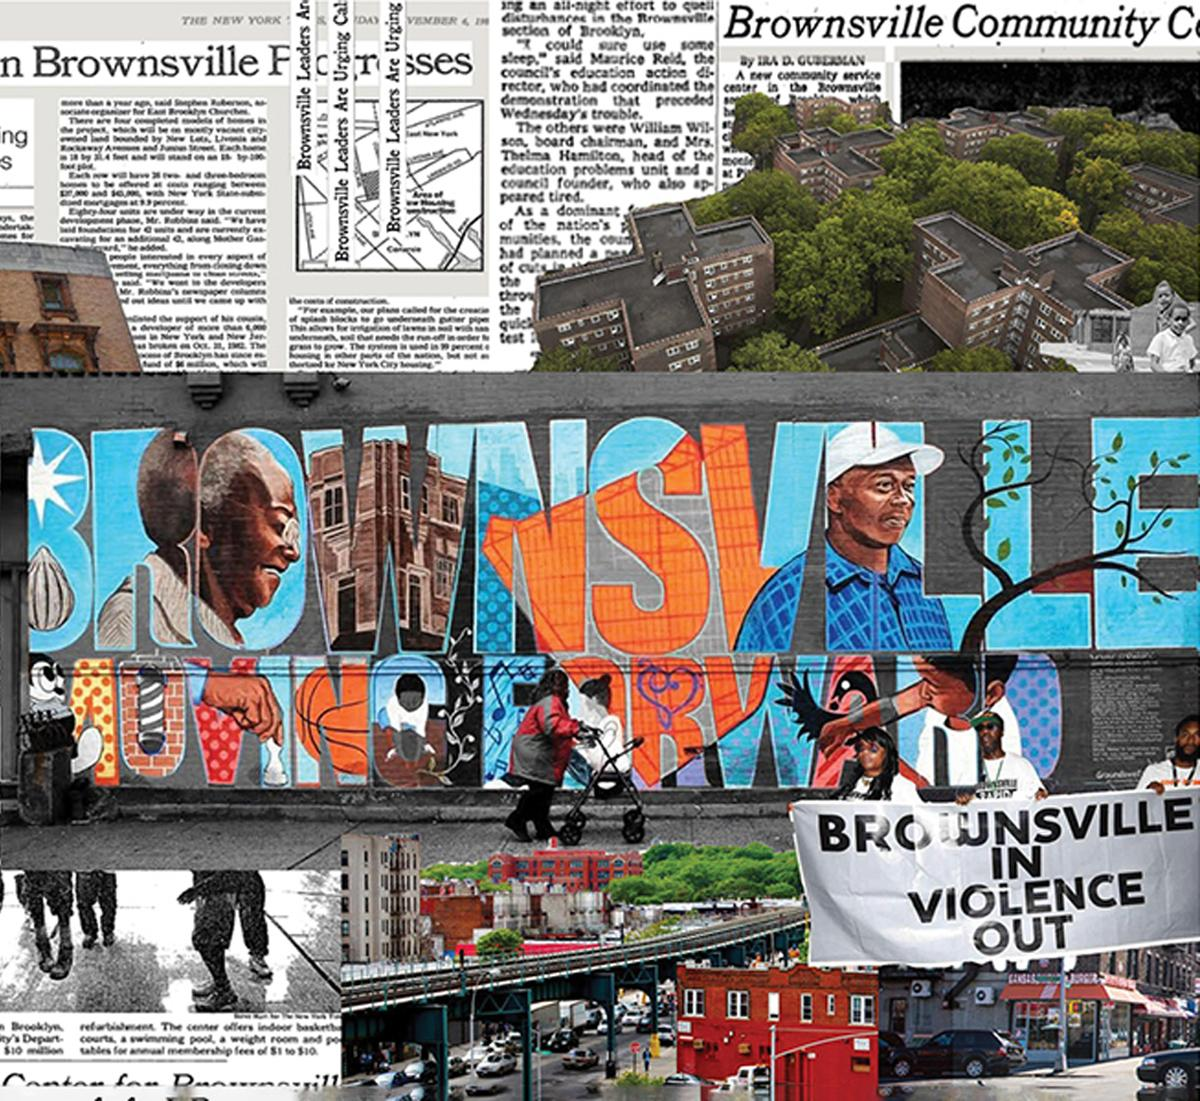 collage of text, housing images, banner images and text images of Brownsville